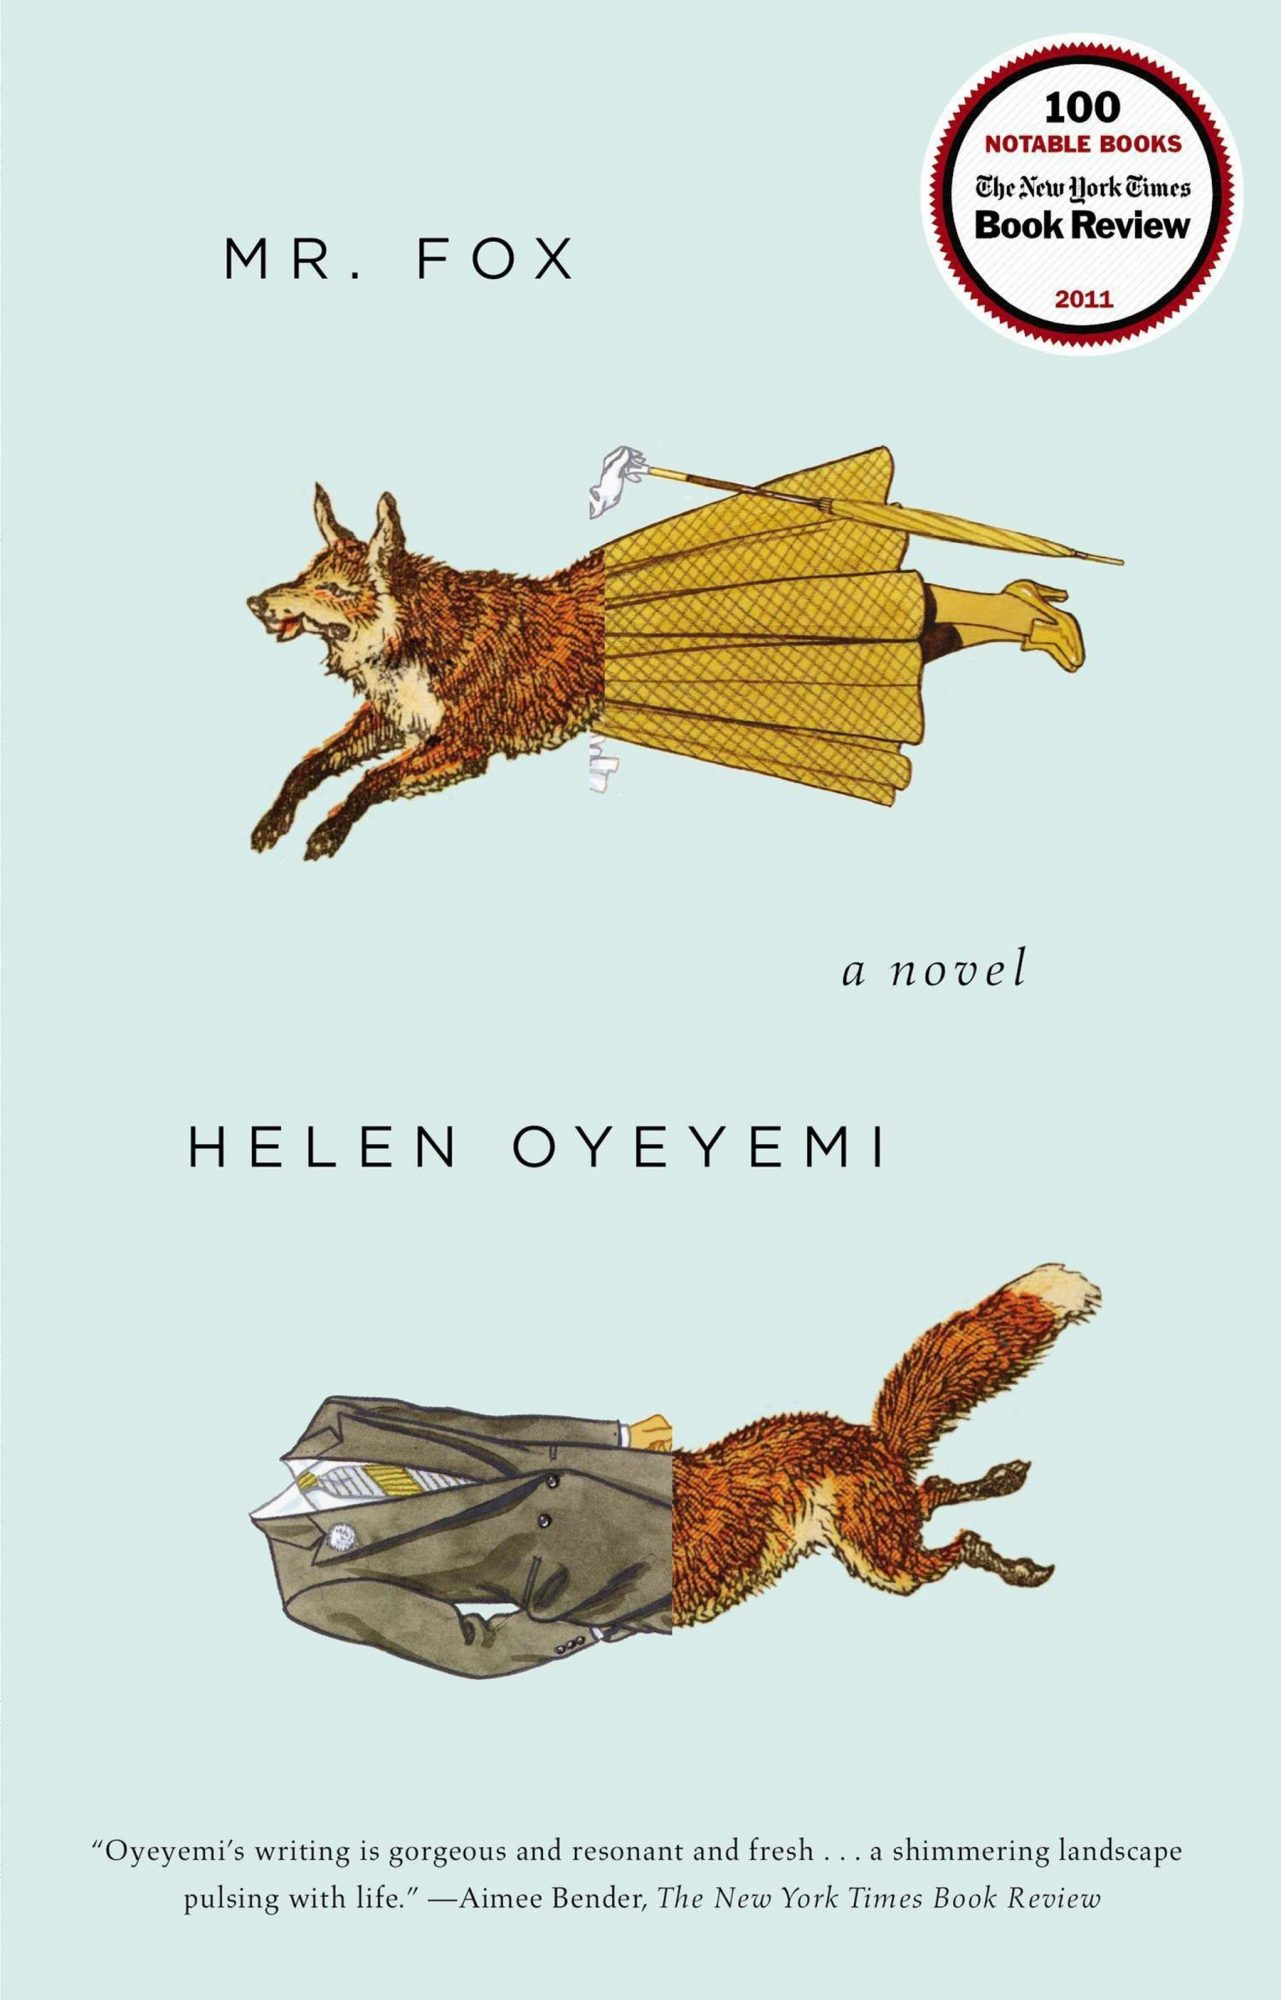 Mr. Fox by Helen OyeyemiCR: Riverhead Books